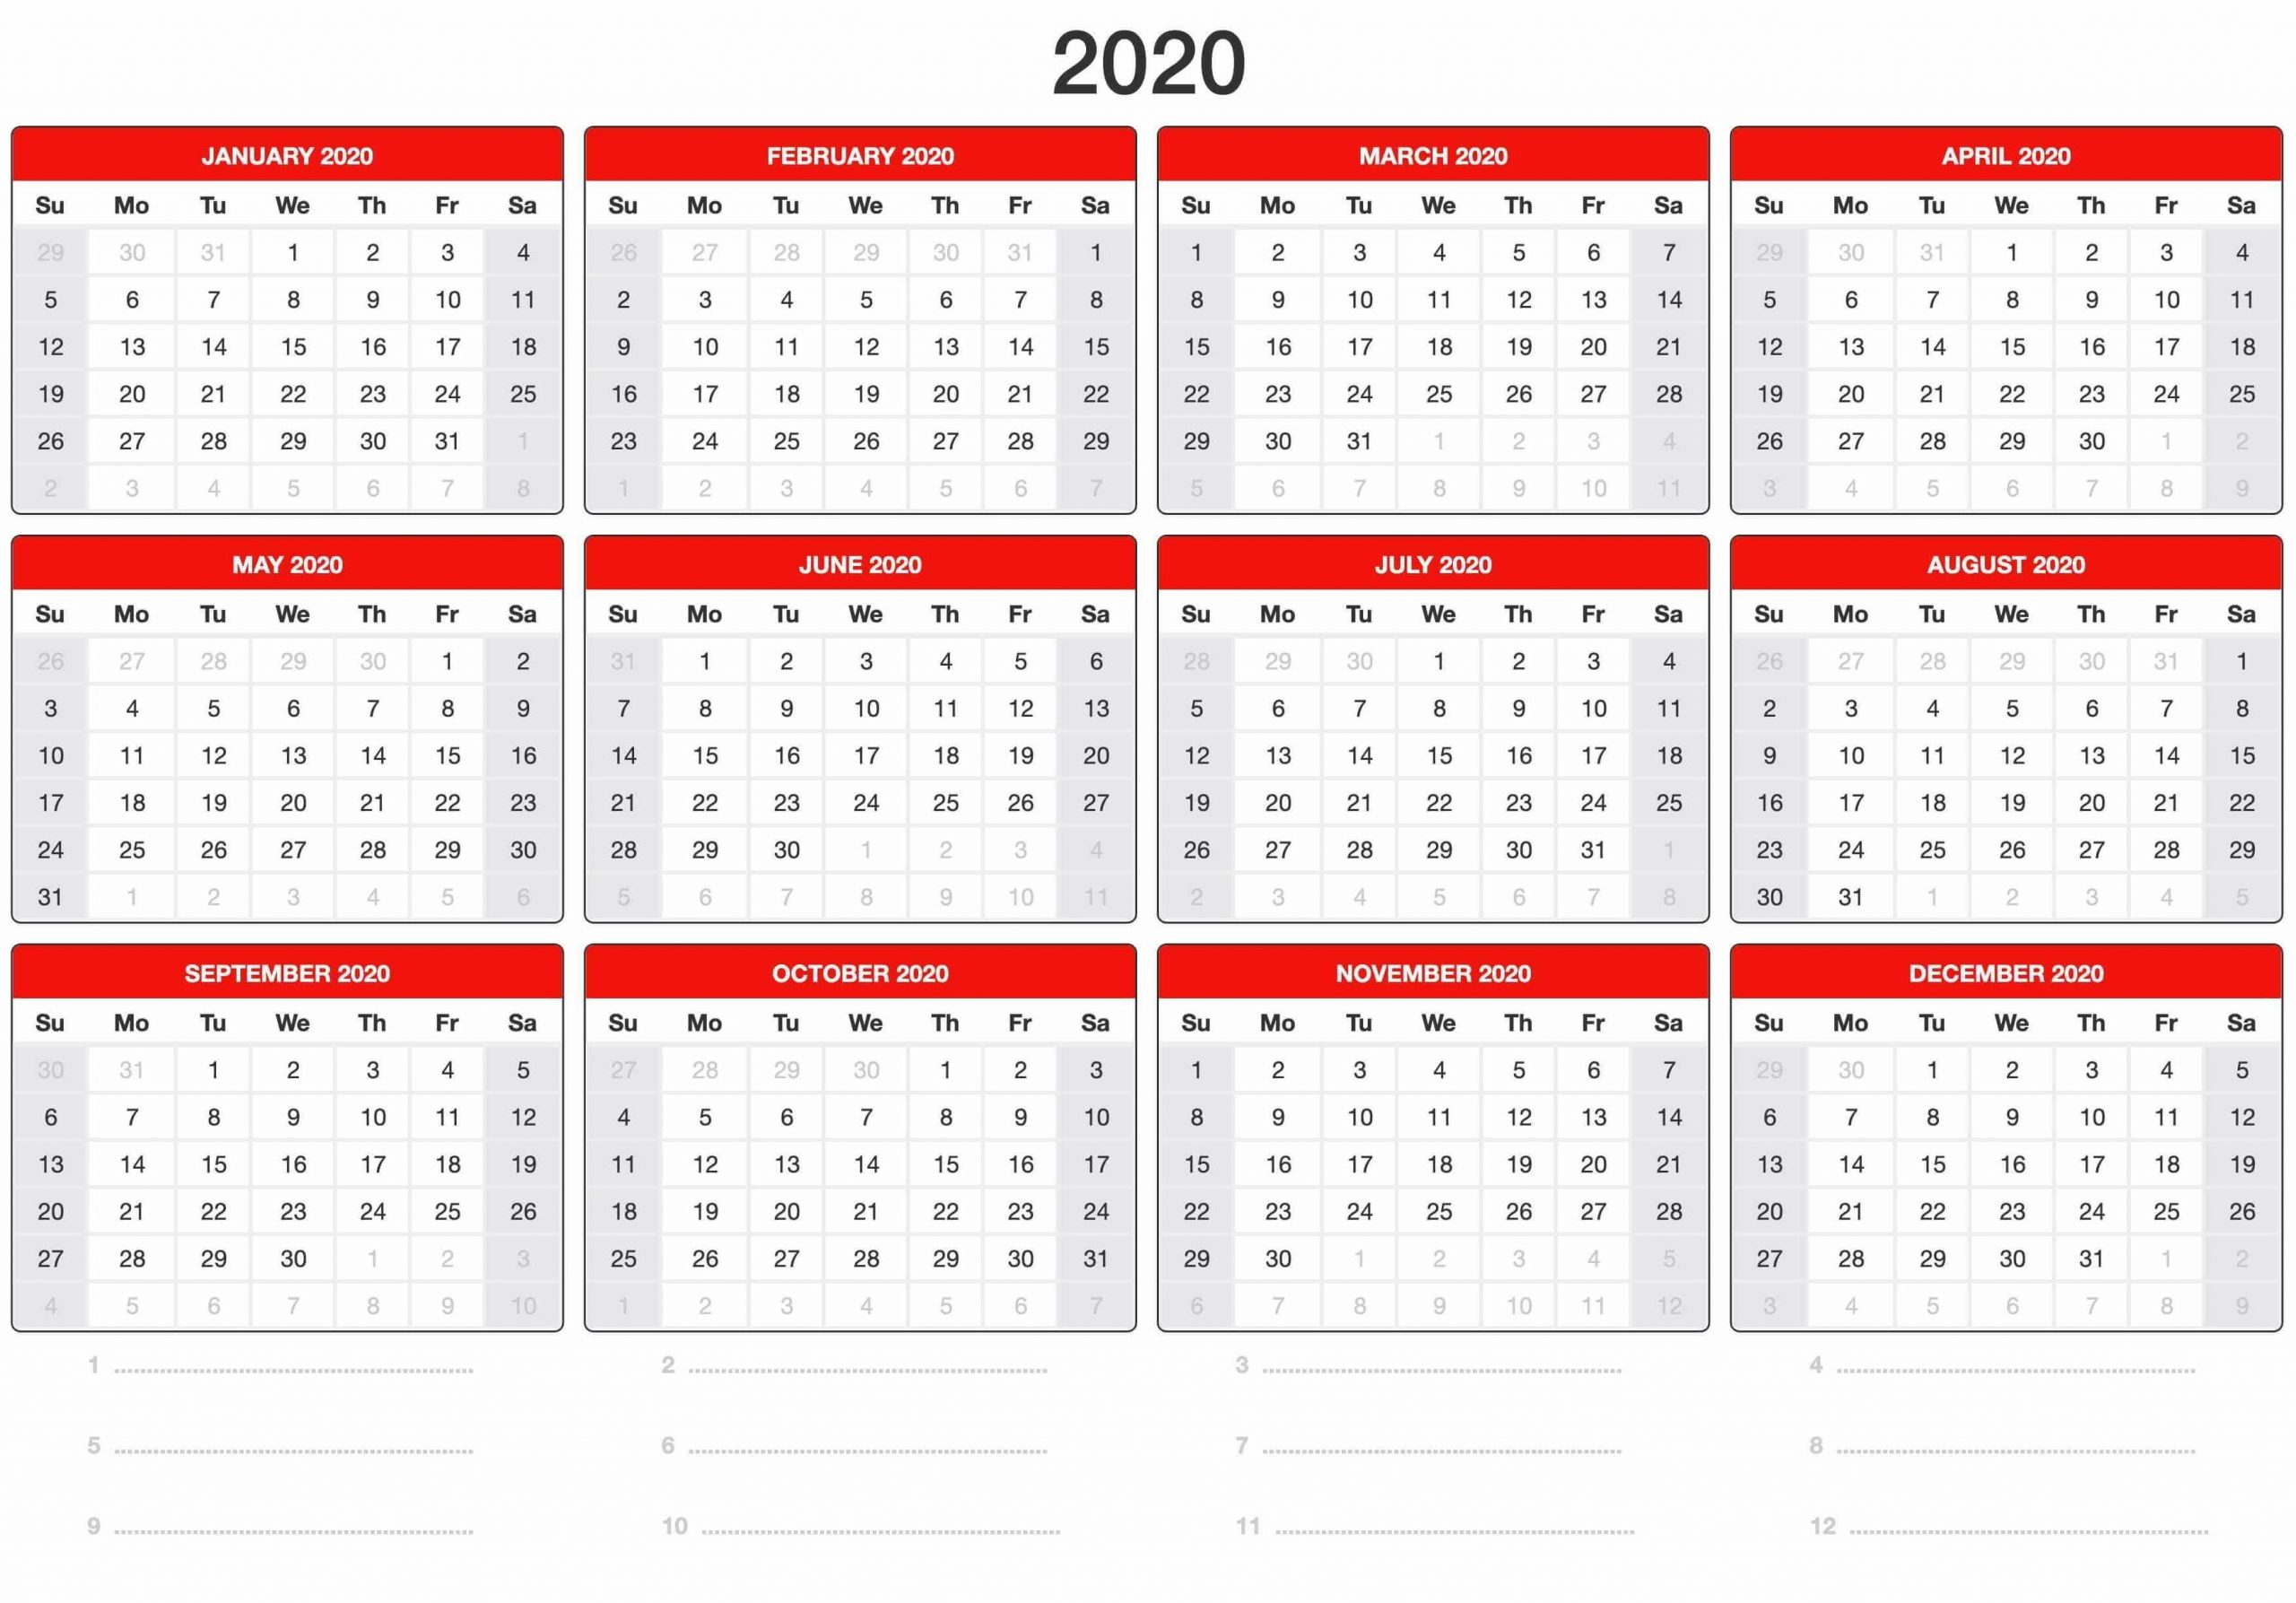 Free Yearly Calendar 2020 Template Online - Set Your Plan for 2020 Printabl Calendar With Space To Write Free